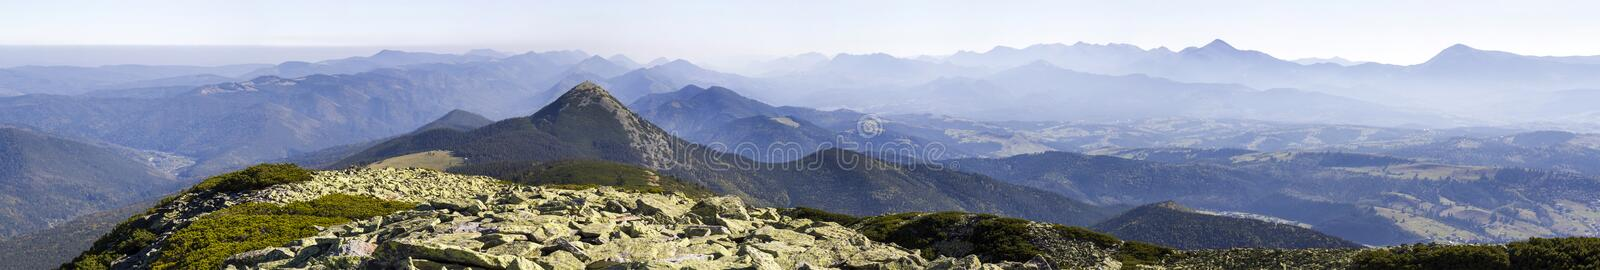 Wide panorama of green mountain hills in sunny clear weather. Carpathian mountains landscape in summer. View of rocky peaks covere royalty free stock photos